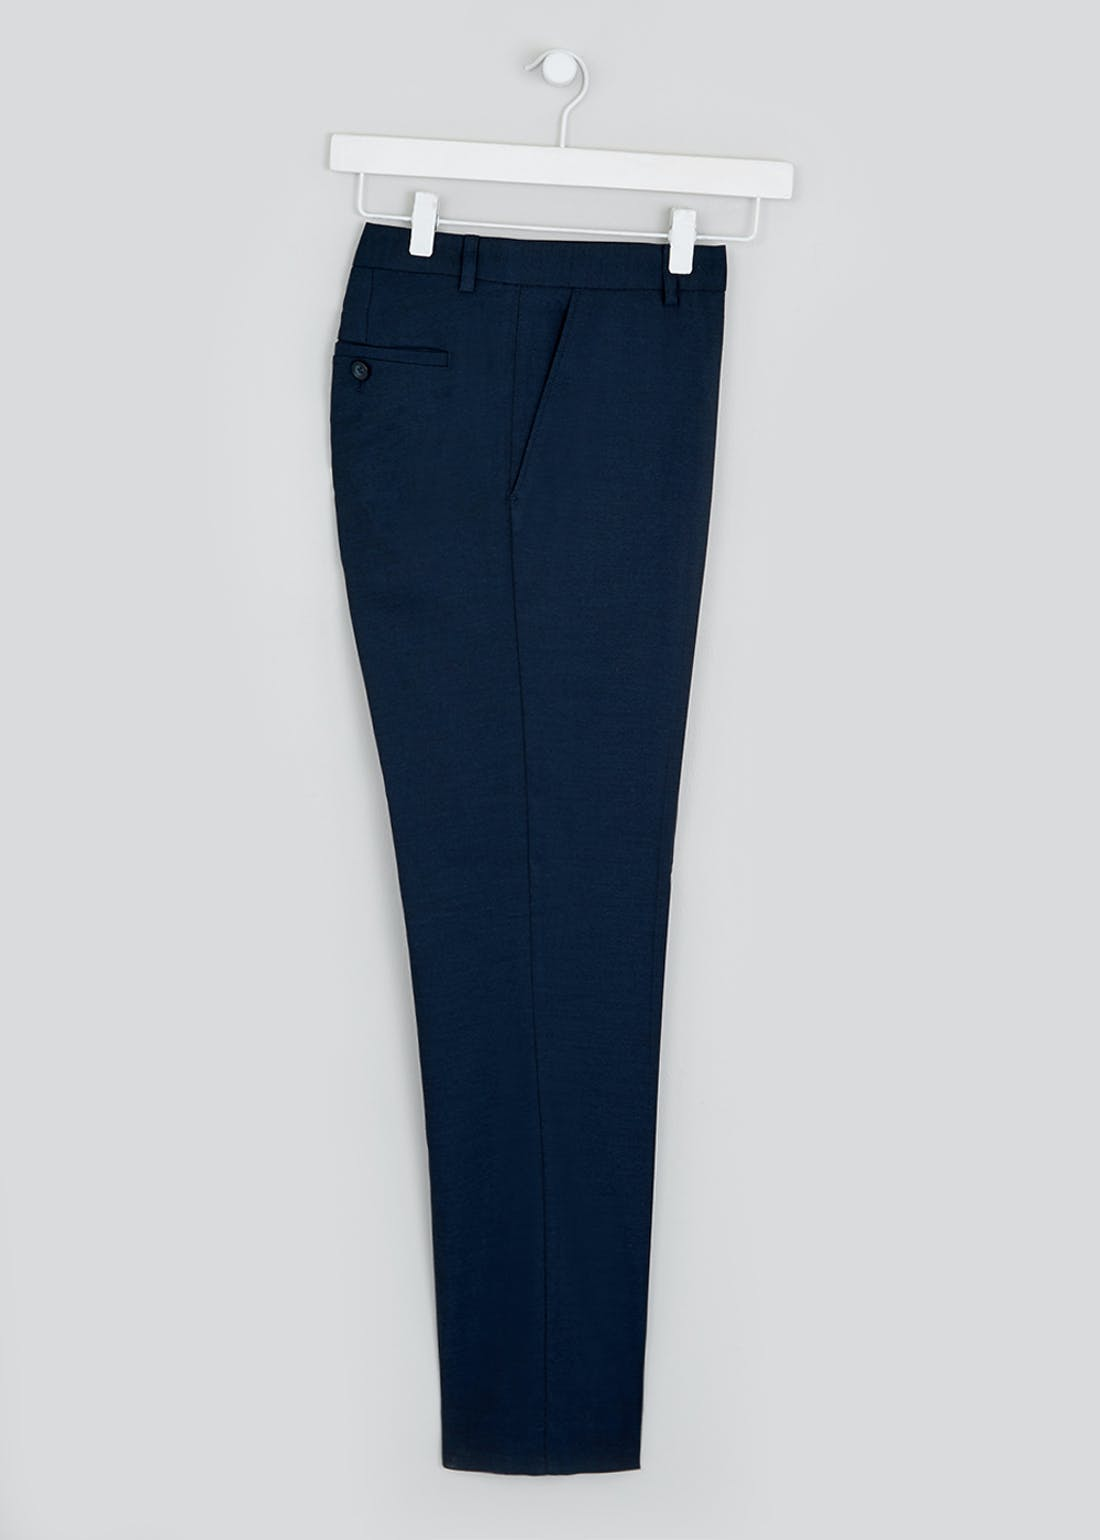 Taylor & Wright Jones Tailored Fit Trousers